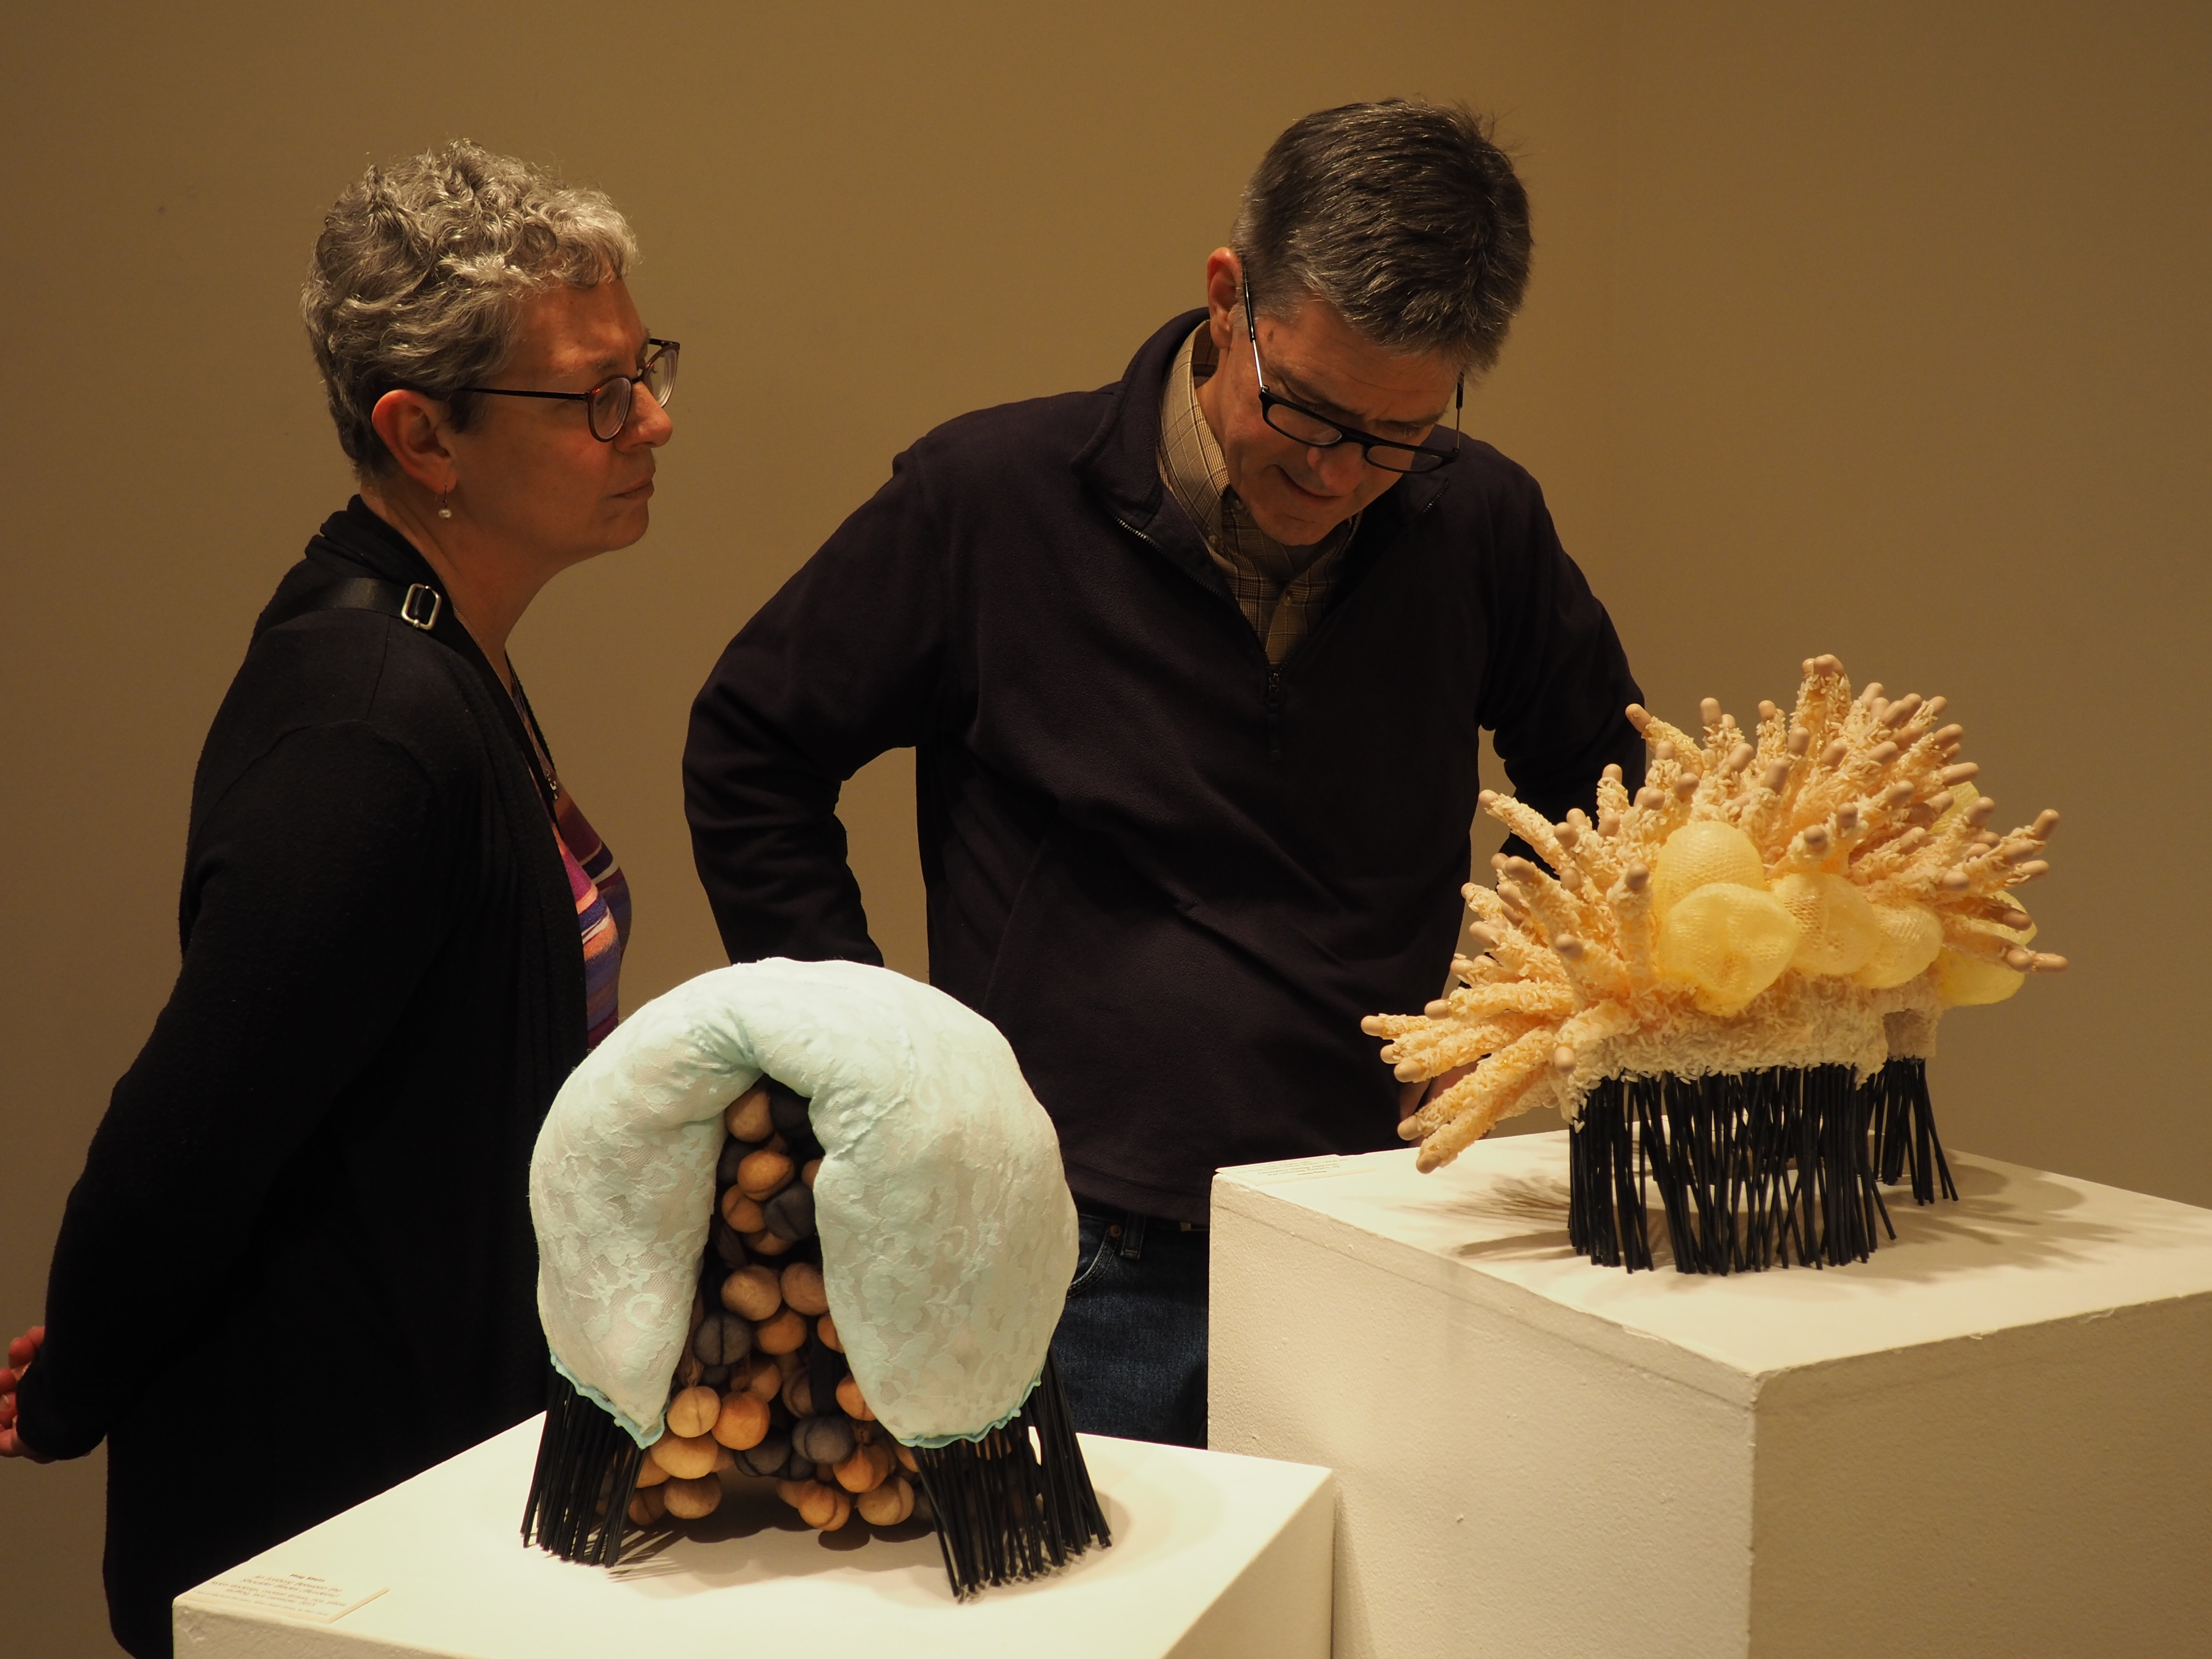 Attendees of the faculty art exhibition view Iceberg Between the Shoulder Blades by Meg Stein